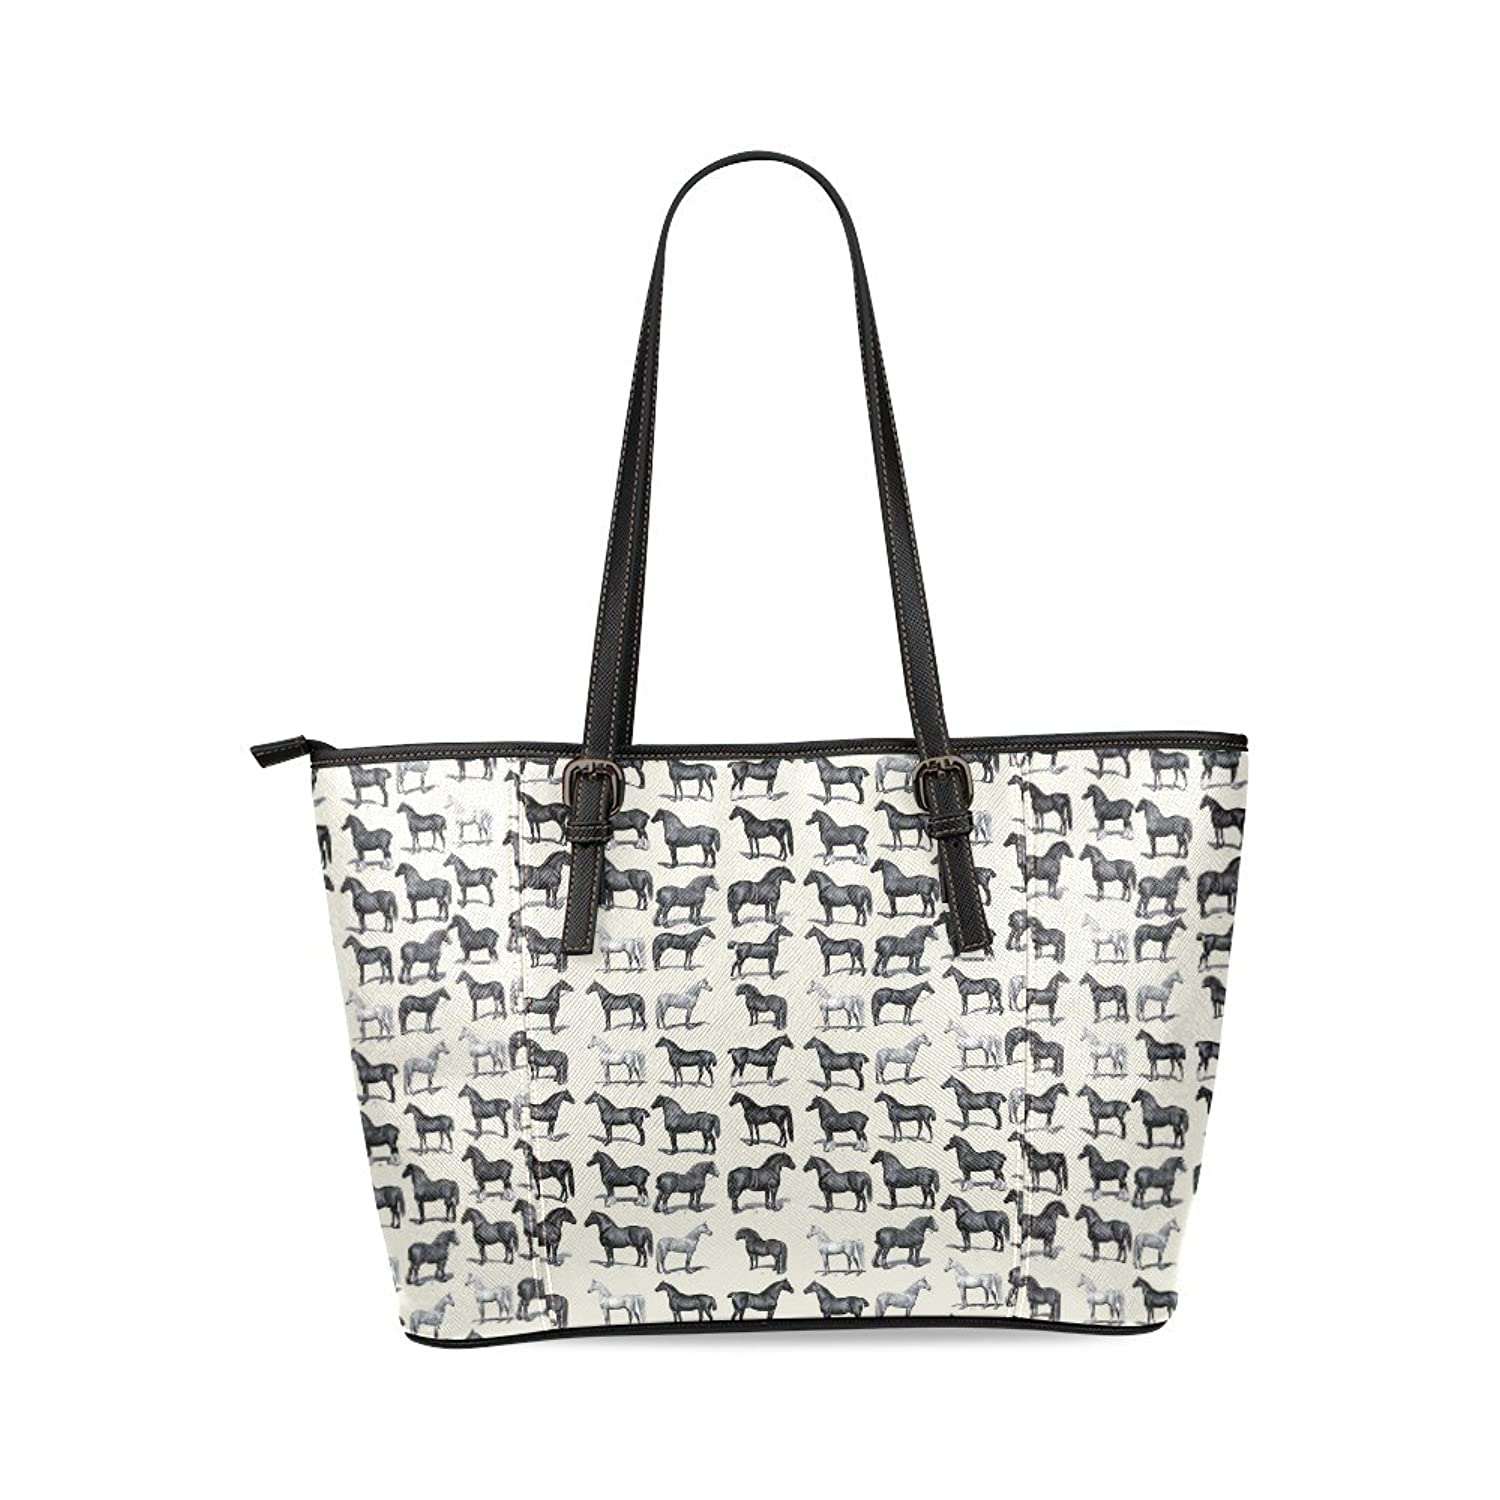 Horse Women's Mosaic High-grade PU Leather Large Tote Bag/Handbag/Shoulder Bag